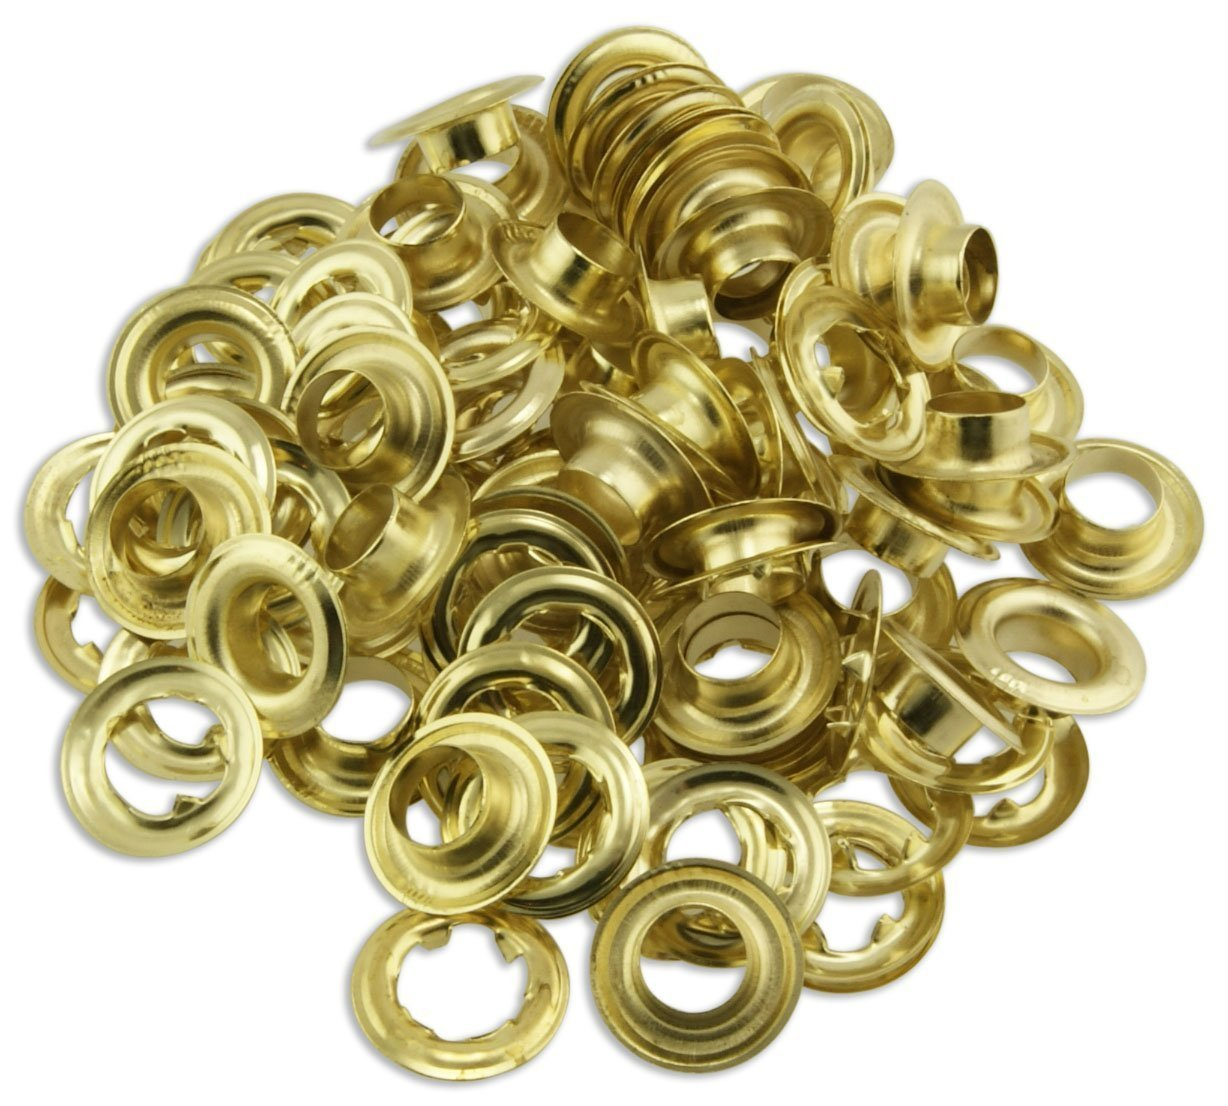 RAM PRO 50pc Quality Brass 1 2 Grommets Tarps Canvas Covers